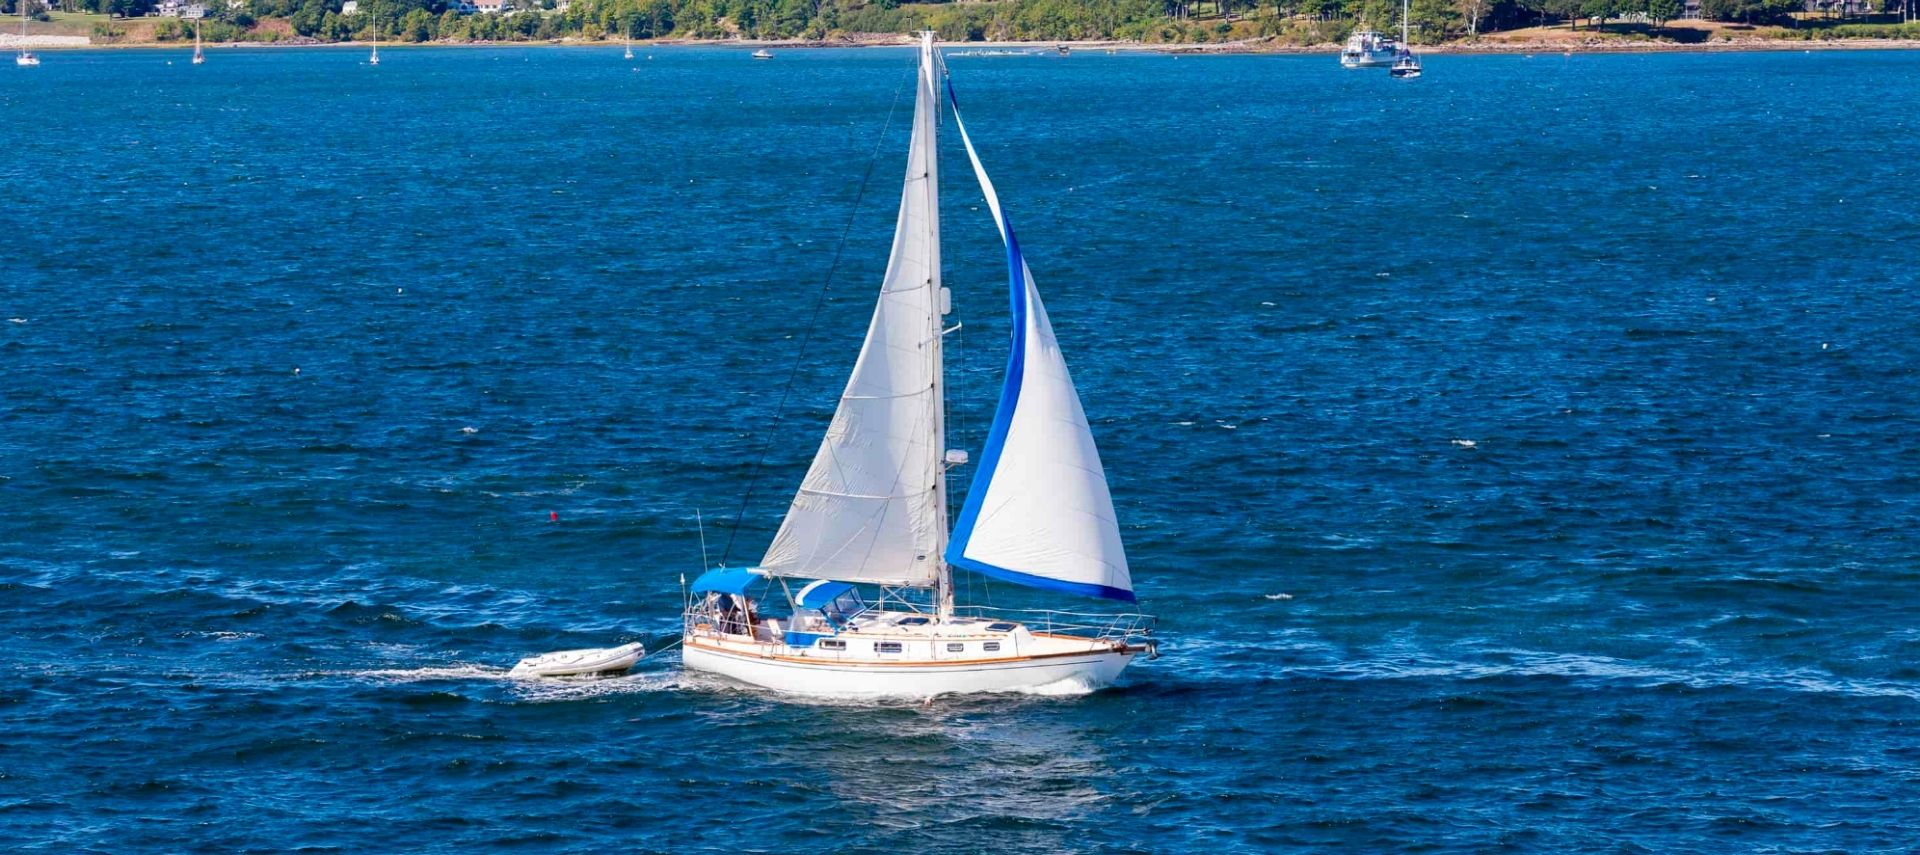 White sailboat with white sails sailing in the open blue water